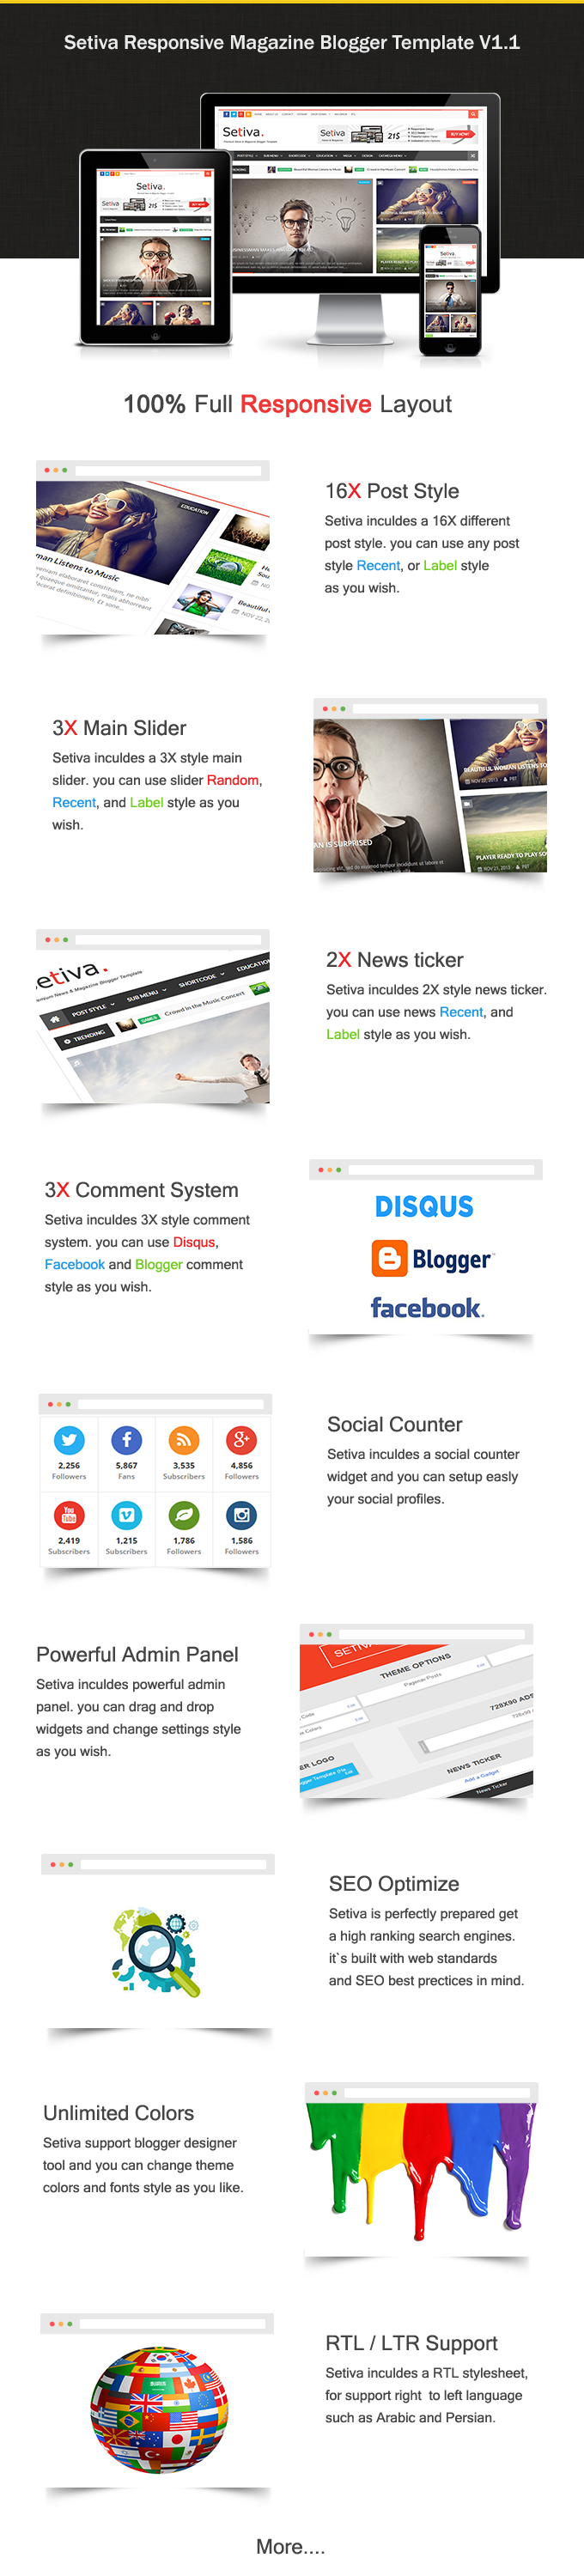 Setiva free blogger templates review